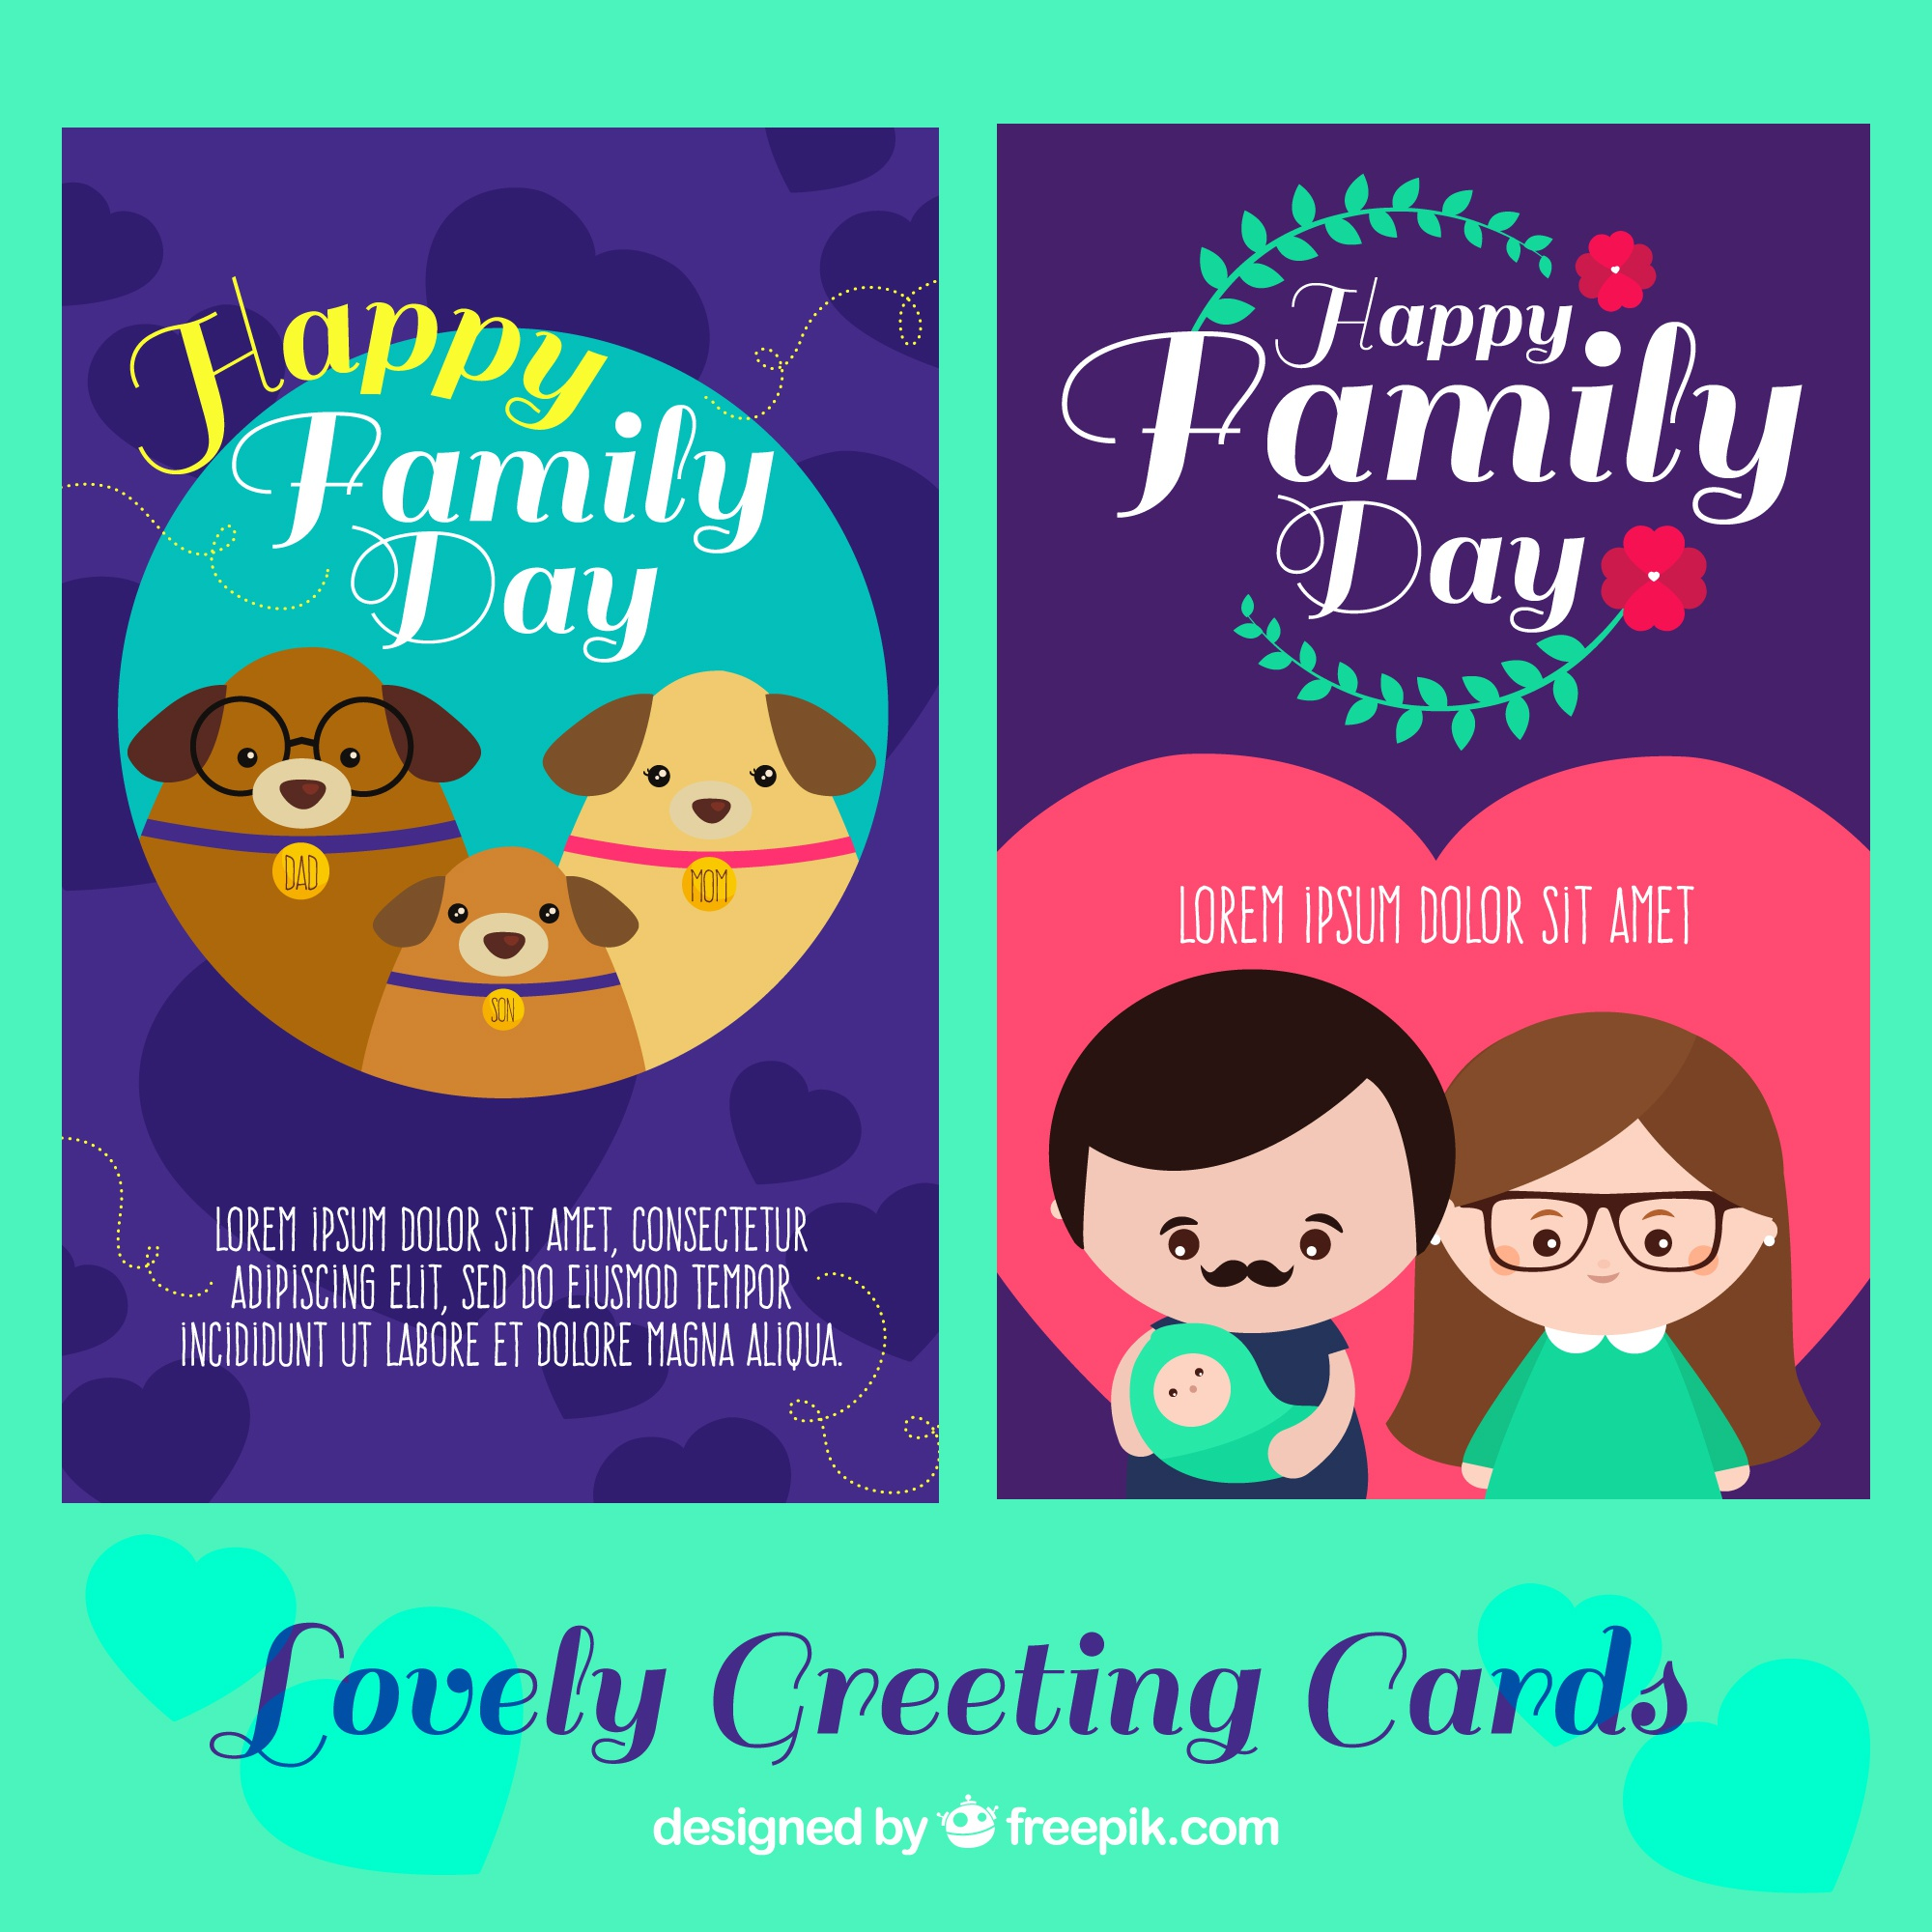 Lovely greeting cards for international day of families